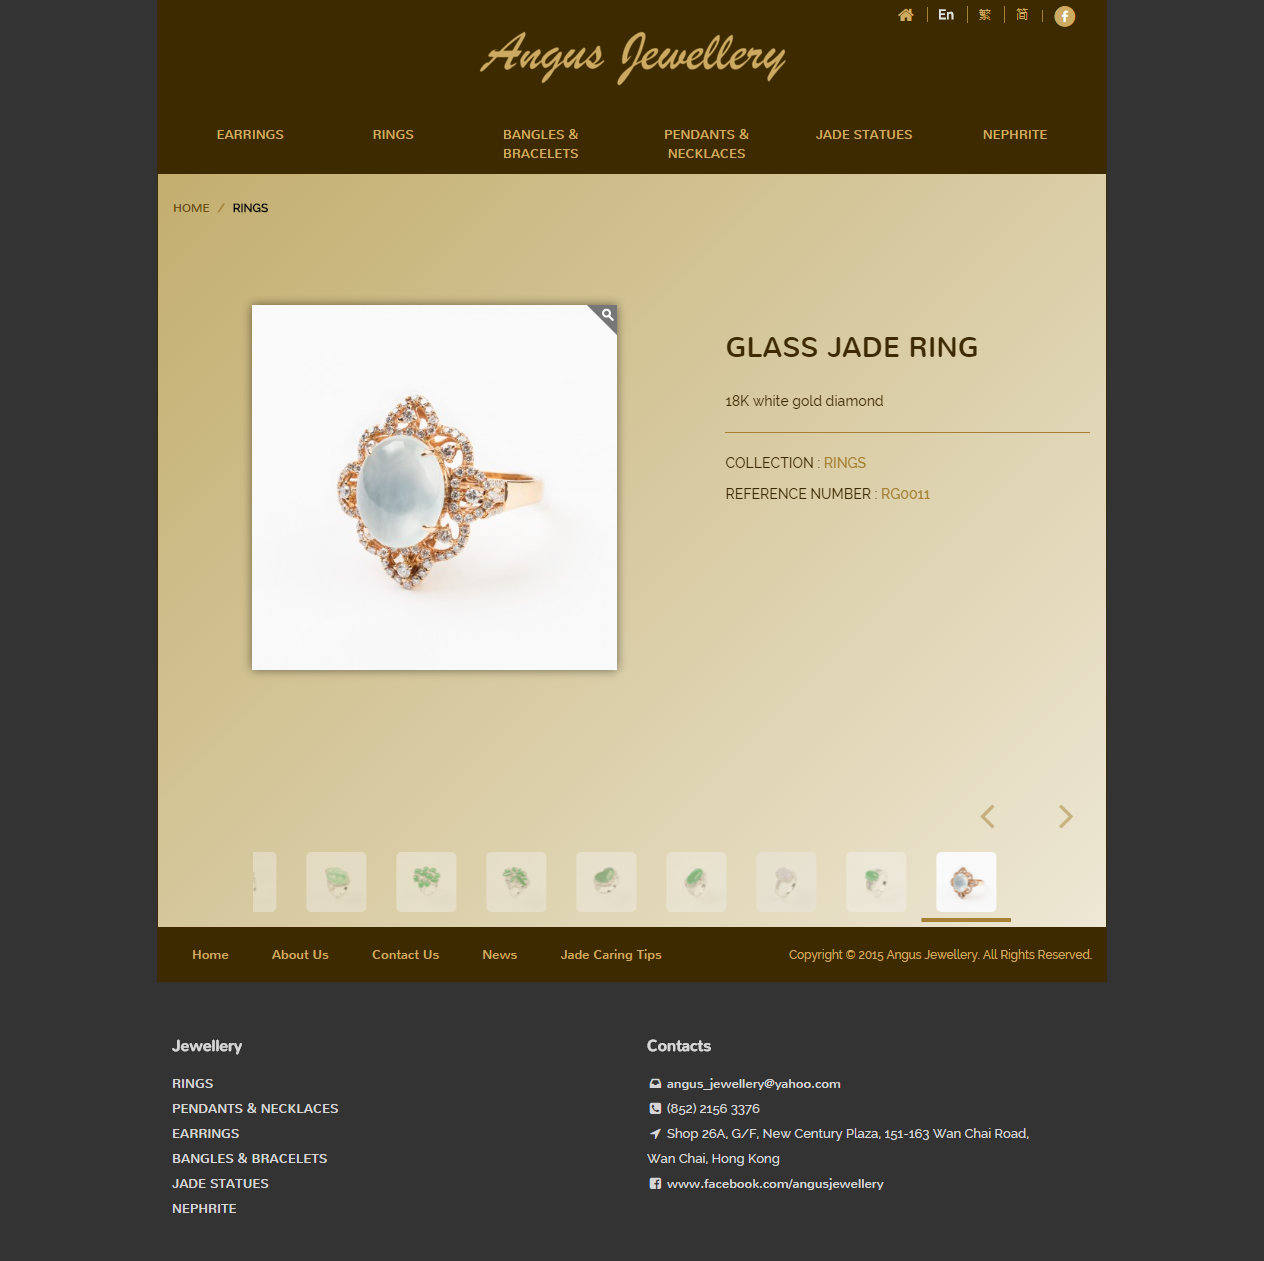 Angus Jewellery Website | Product Page - Rings